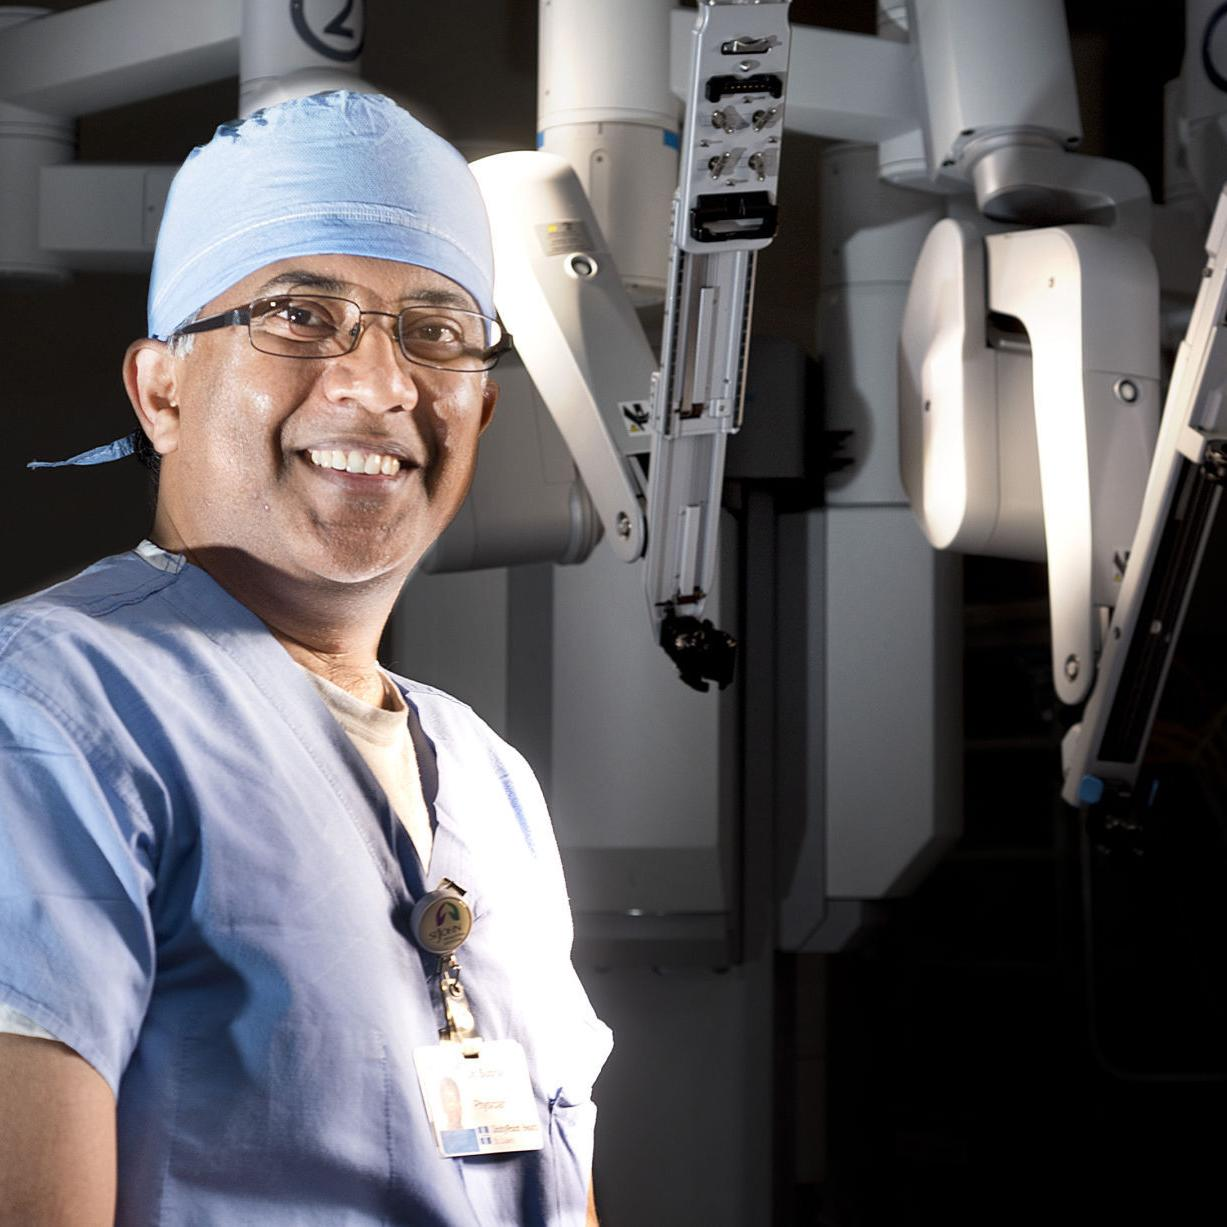 Robotic Surgery Benefits Colorectal Cancer Patients Surgeons Health Medicine And Fitness Siouxcityjournal Com